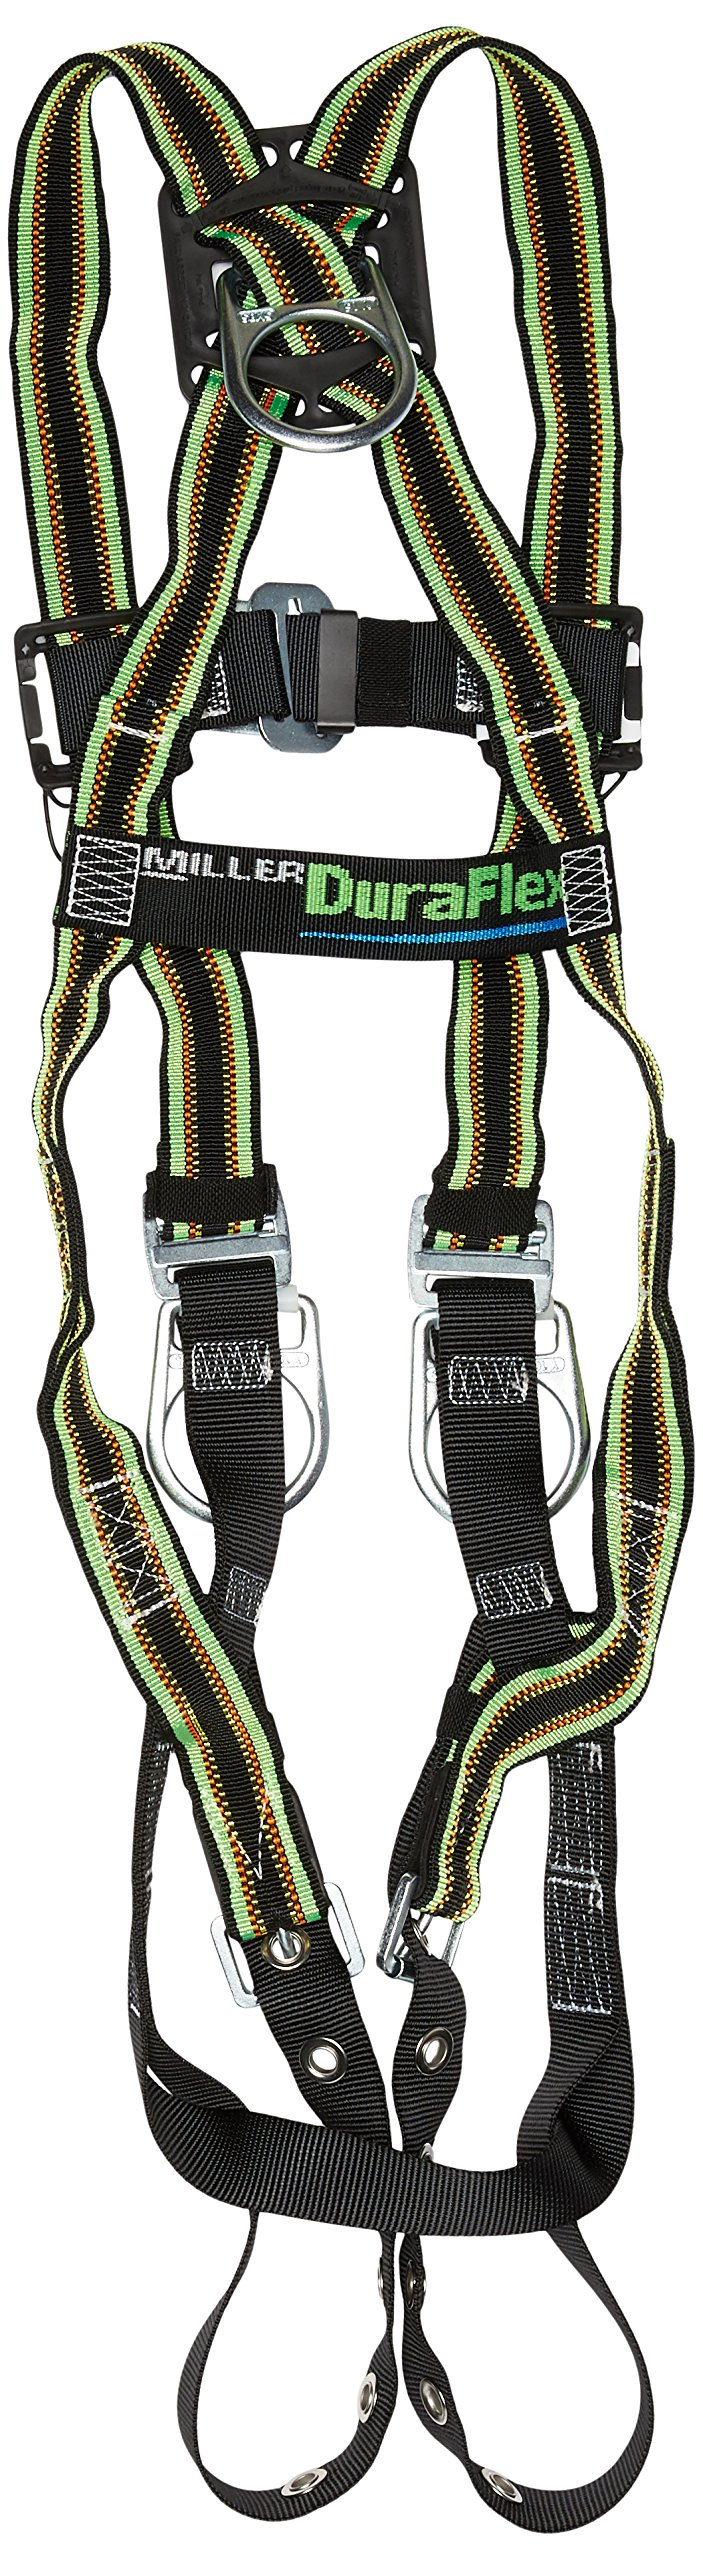 Miller by Honeywell E650-58/UGN DuraFlex 650 Series Full-Body Stretchable Harness with tongue Buckle Legs Straps and Side D-Rings, Universal, Green by Honeywell (Image #2)